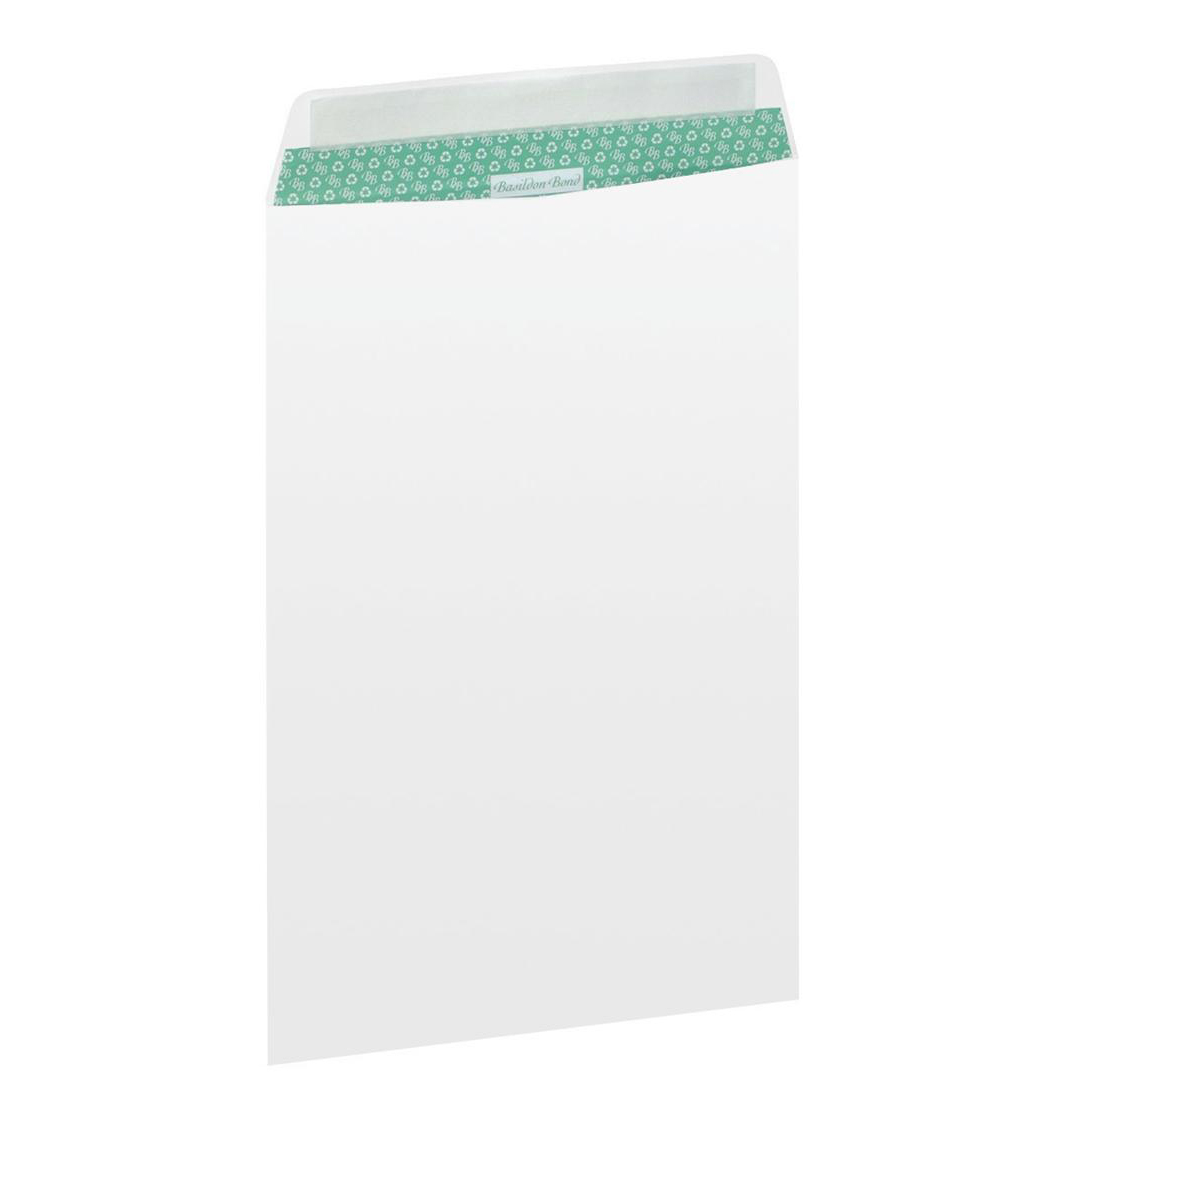 Basildon Bond Envelopes Recycled Pocket Peel and Seal Window 120gsm C4 White Ref B80285 [Pack 50]